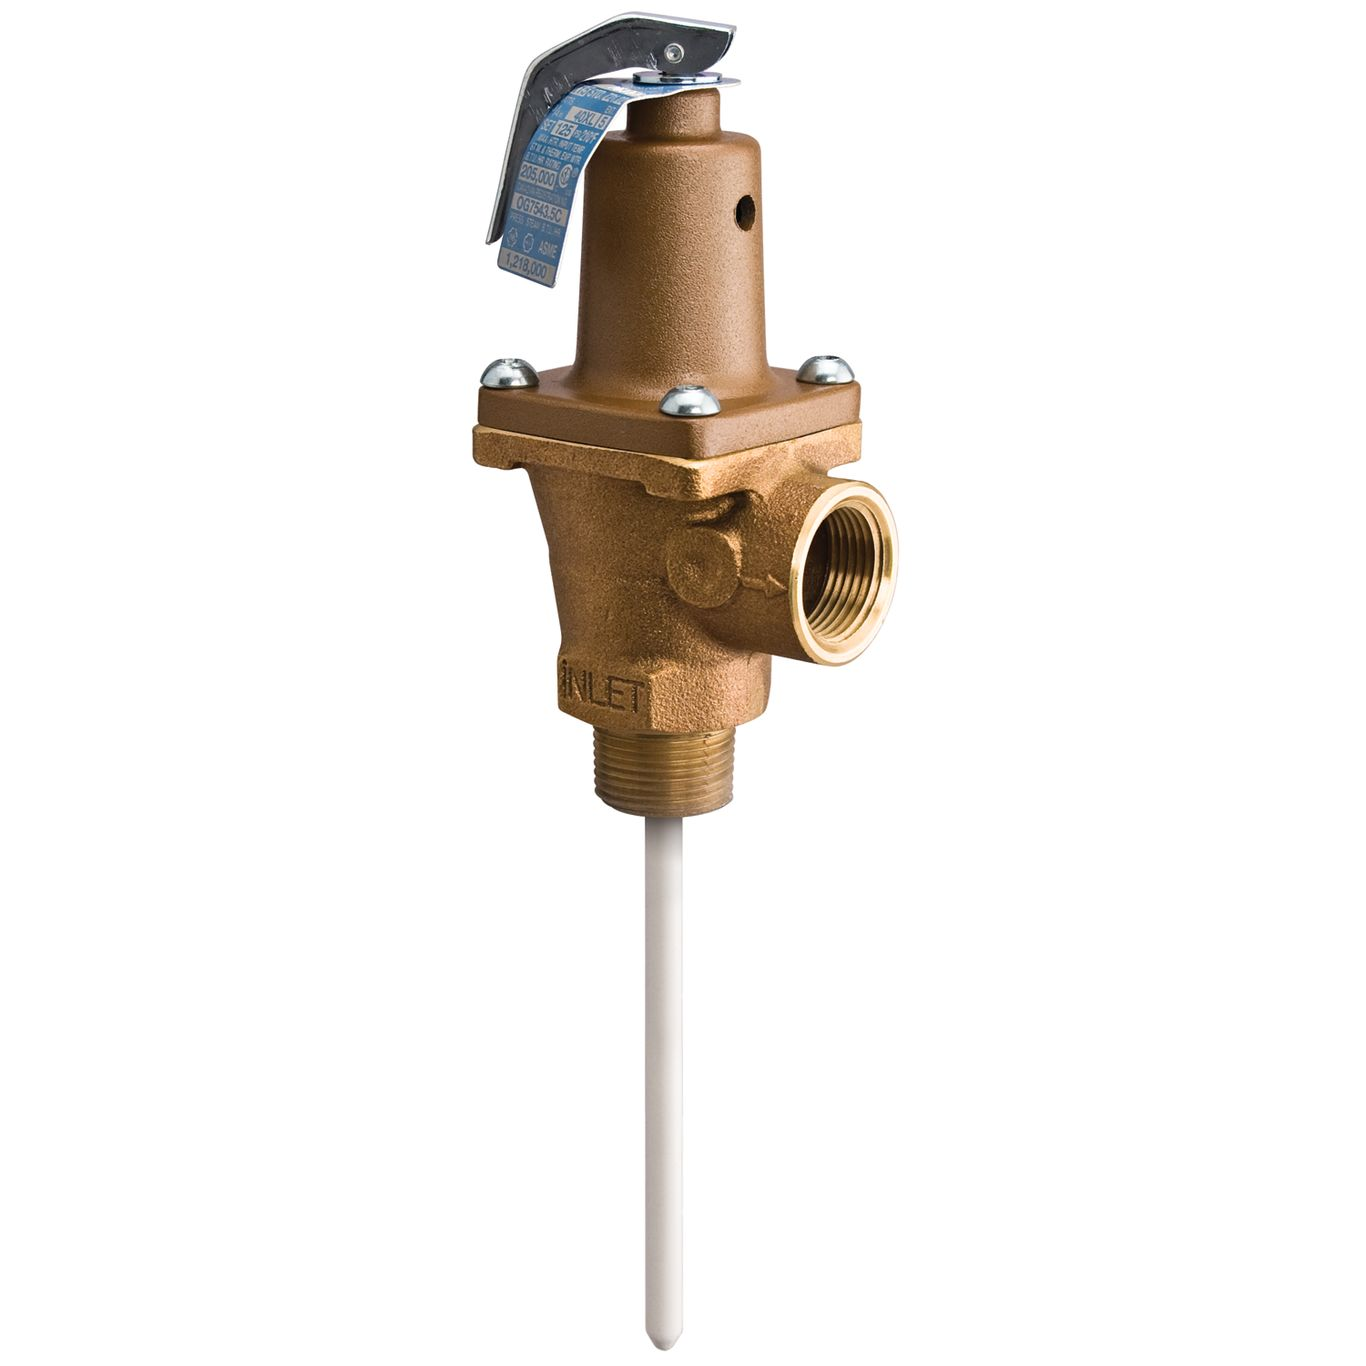 LEAD FREE 1 IN. WATTS TEMPERATURE AND PRESSURE RELIEF VALVE 140XL-7